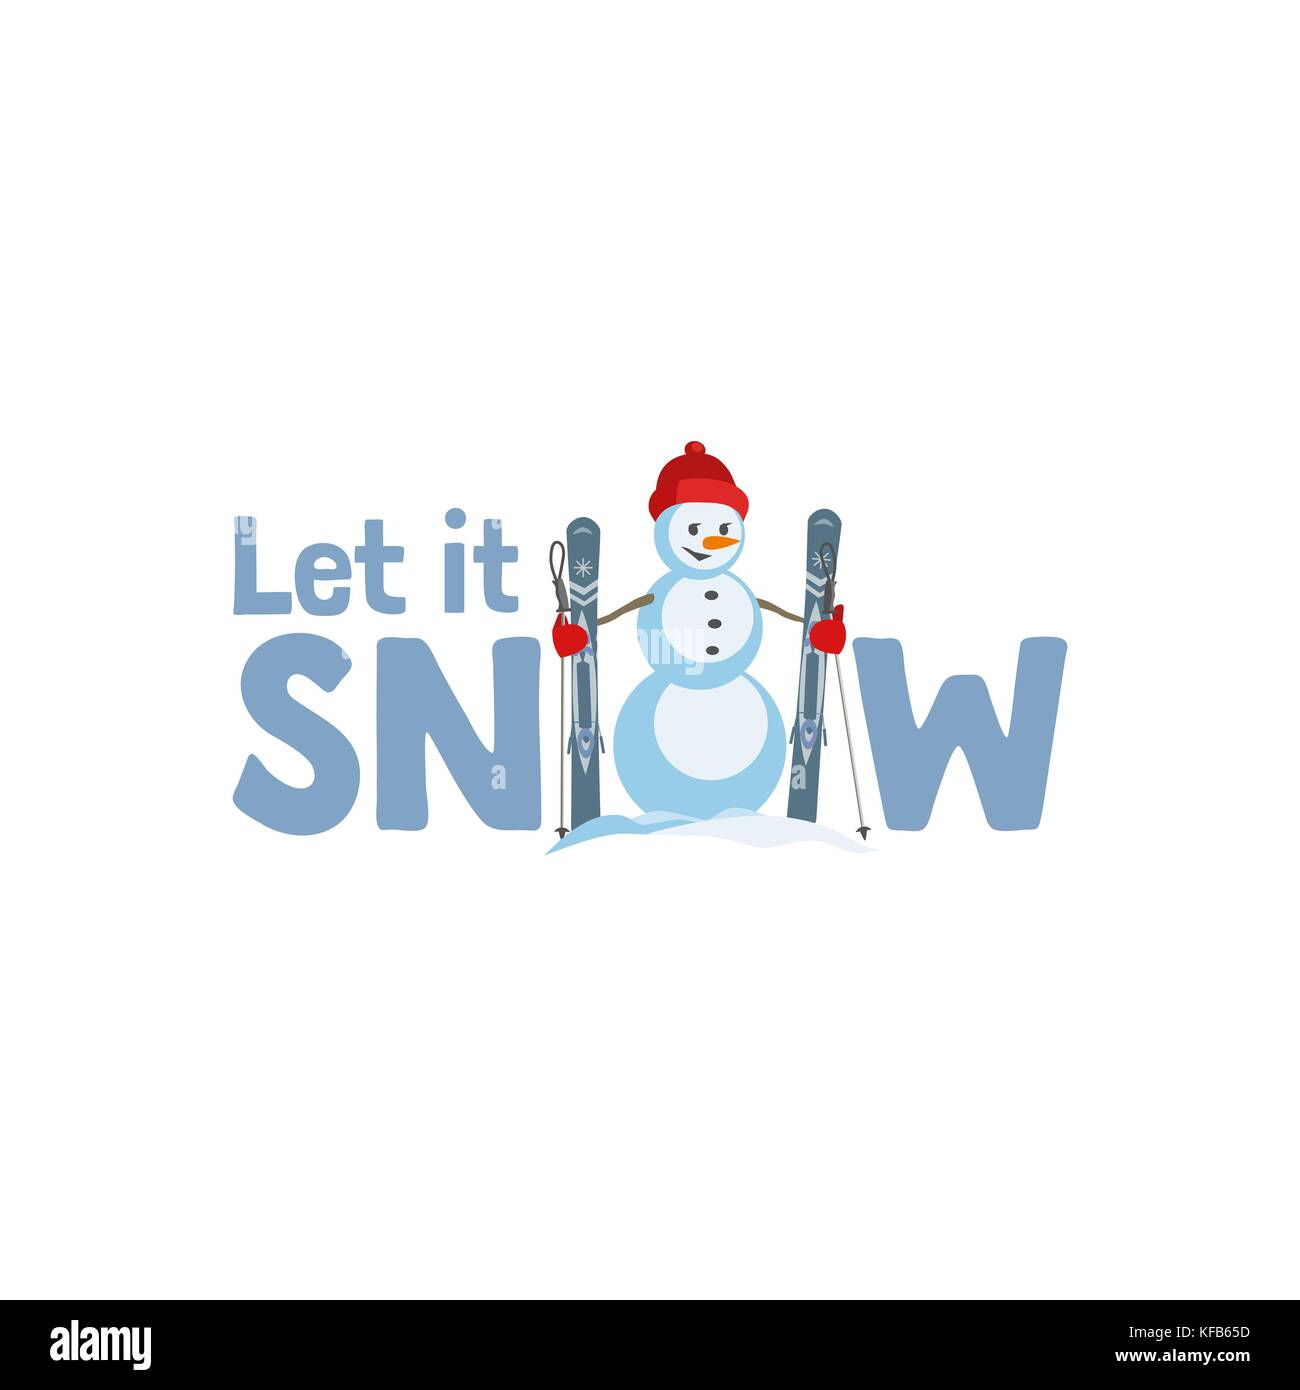 Holiday wishes let it snow fancy letters cartoon playful fun stock fancy letters cartoon playful fun snowman skier template for merry christmas season greeting card t shirt print party spiritdancerdesigns Gallery